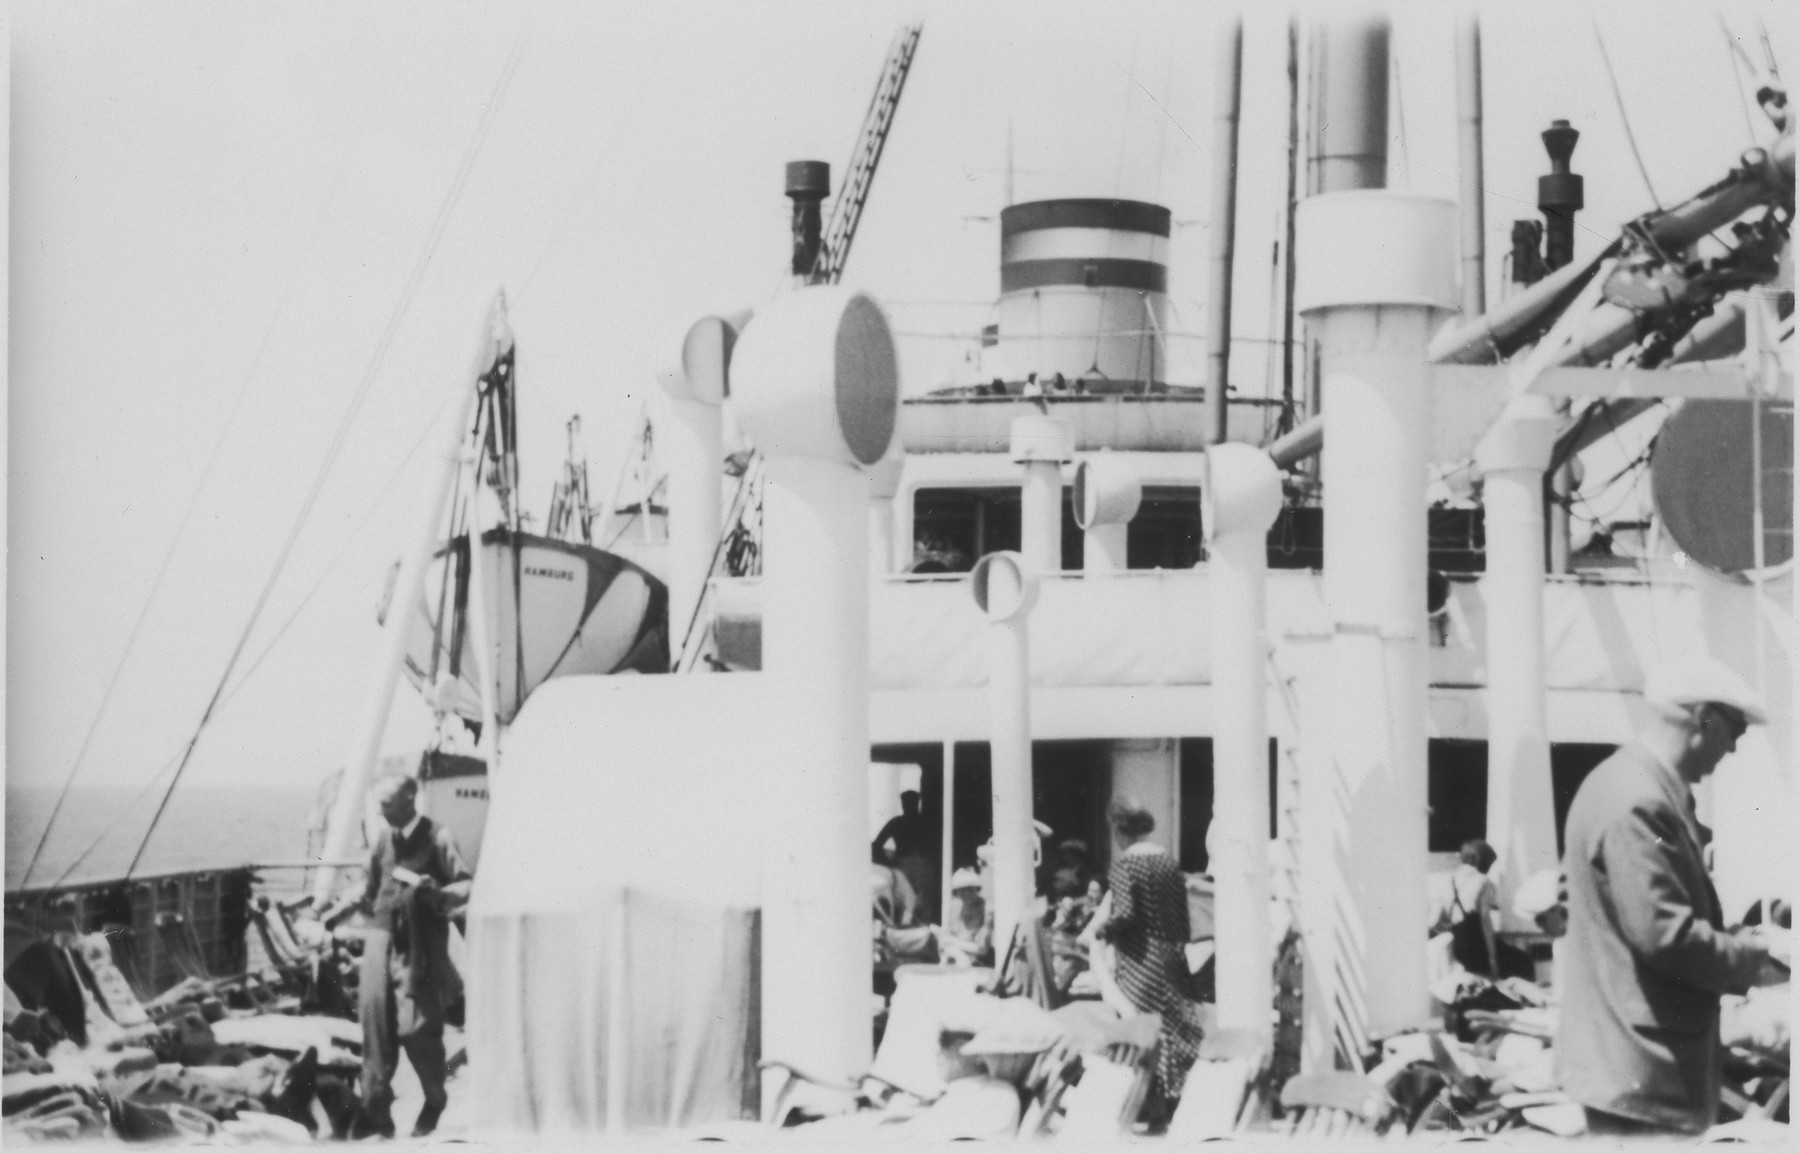 Passengers gather on a deck of the MS St. Louis.